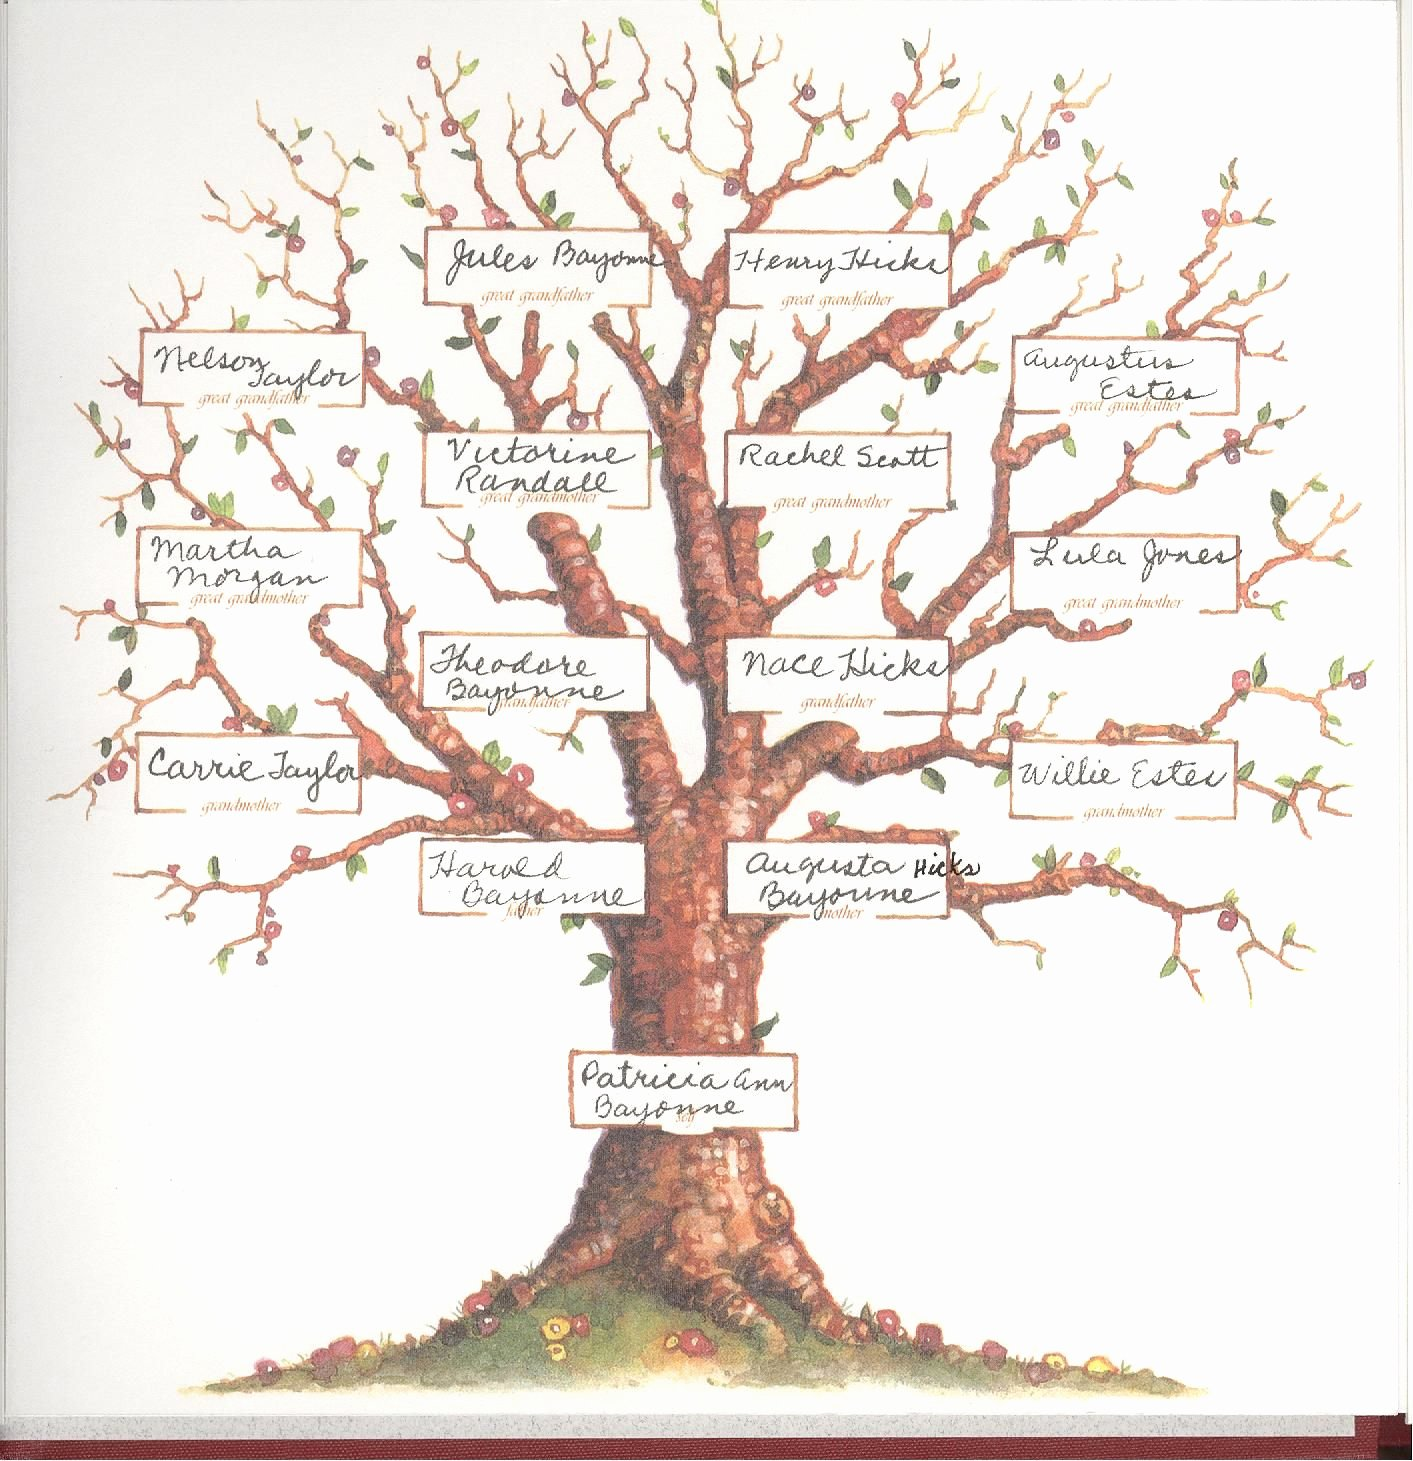 7 Generation Family Tree Template Awesome Blank Family Tree 4 Generations Pat S Family Tree Projects to Try Pinterest